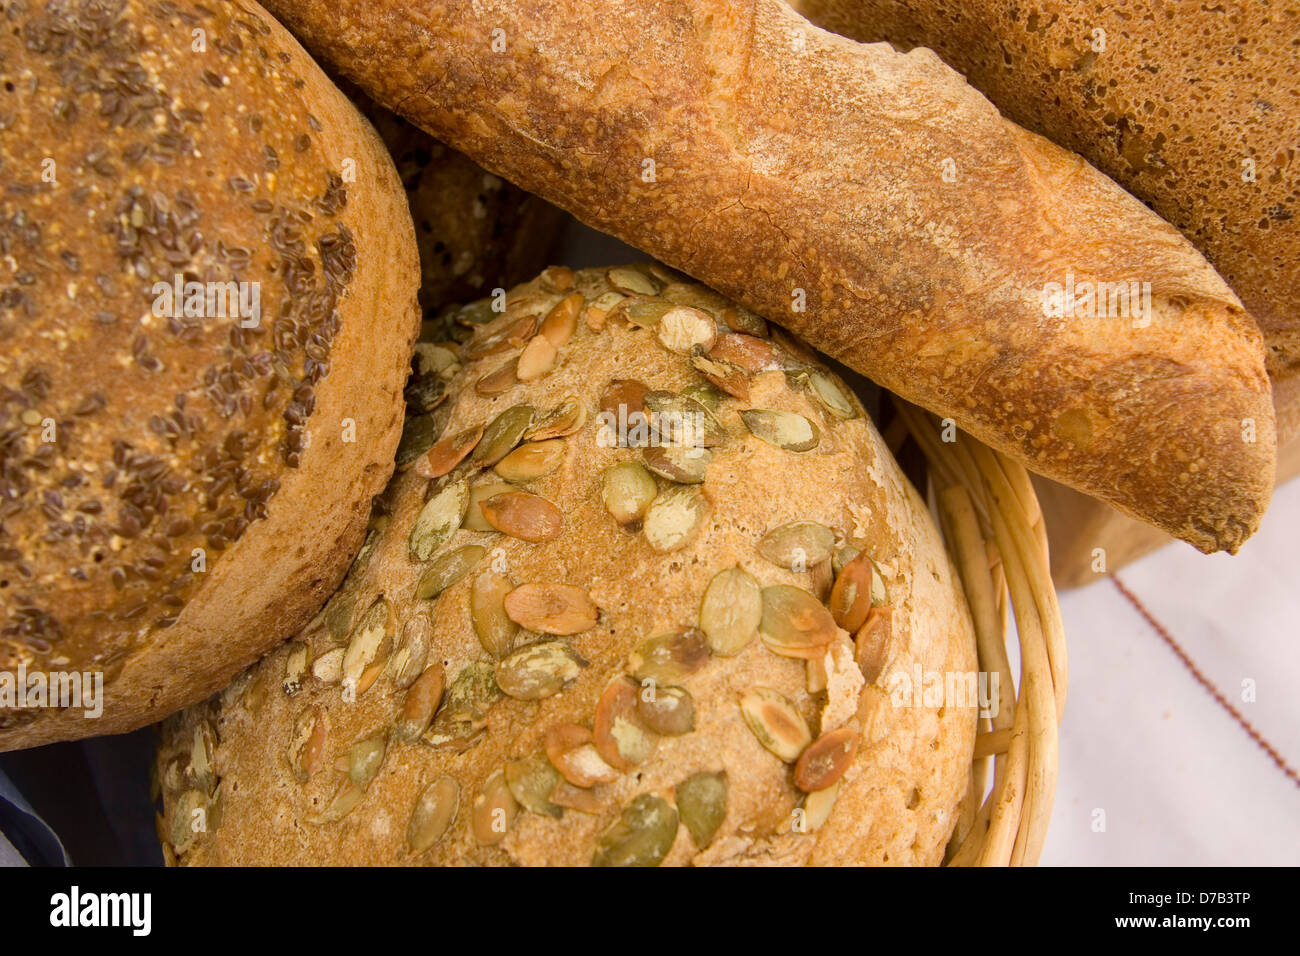 whole wheat home made bread - Stock Image